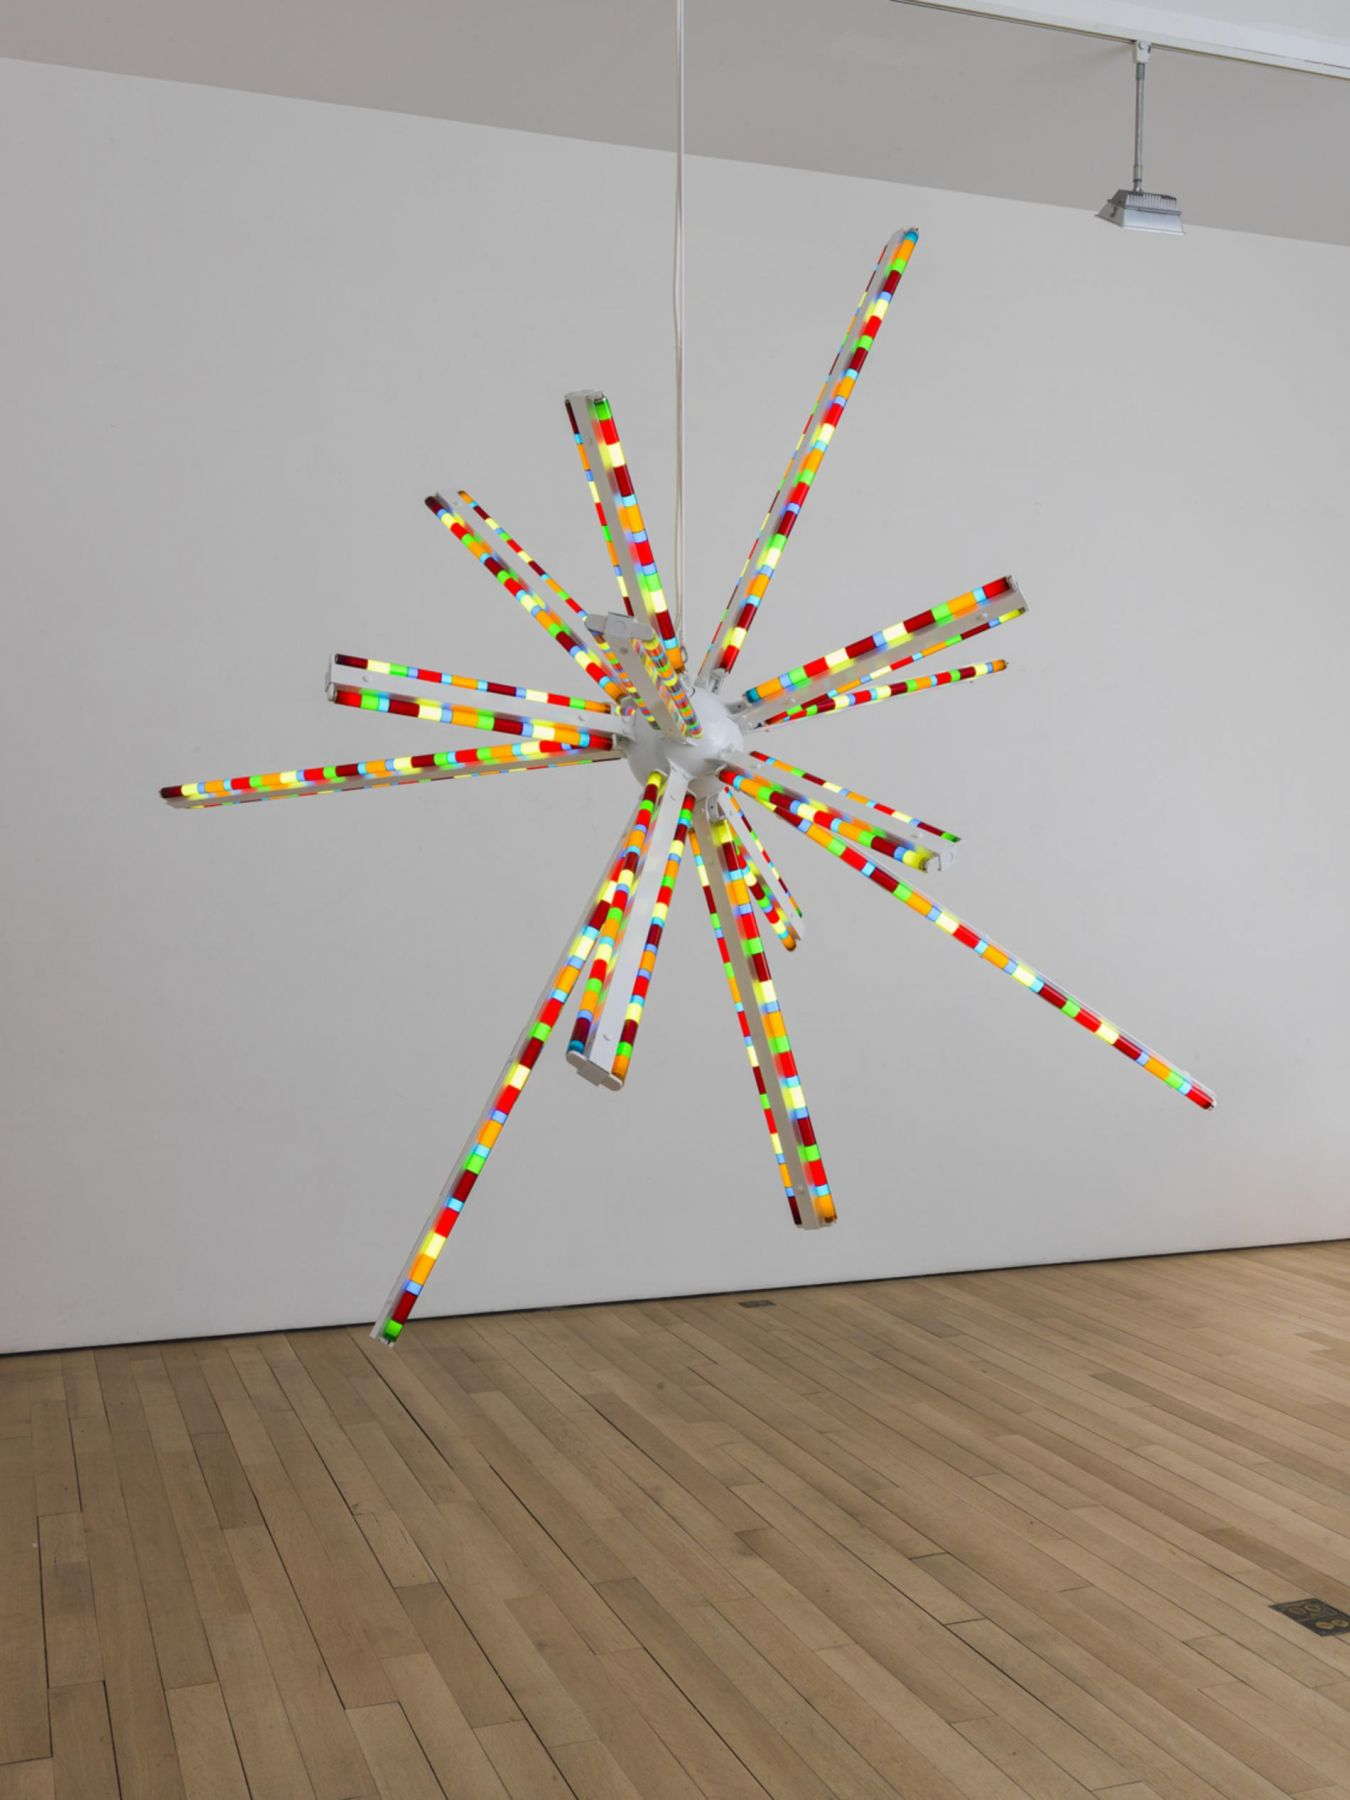 , SPENCER FINCH Aldebaran, 2014 Powder-coated steel and fluorescent light Diameter: 110 in. (279.4 cm)